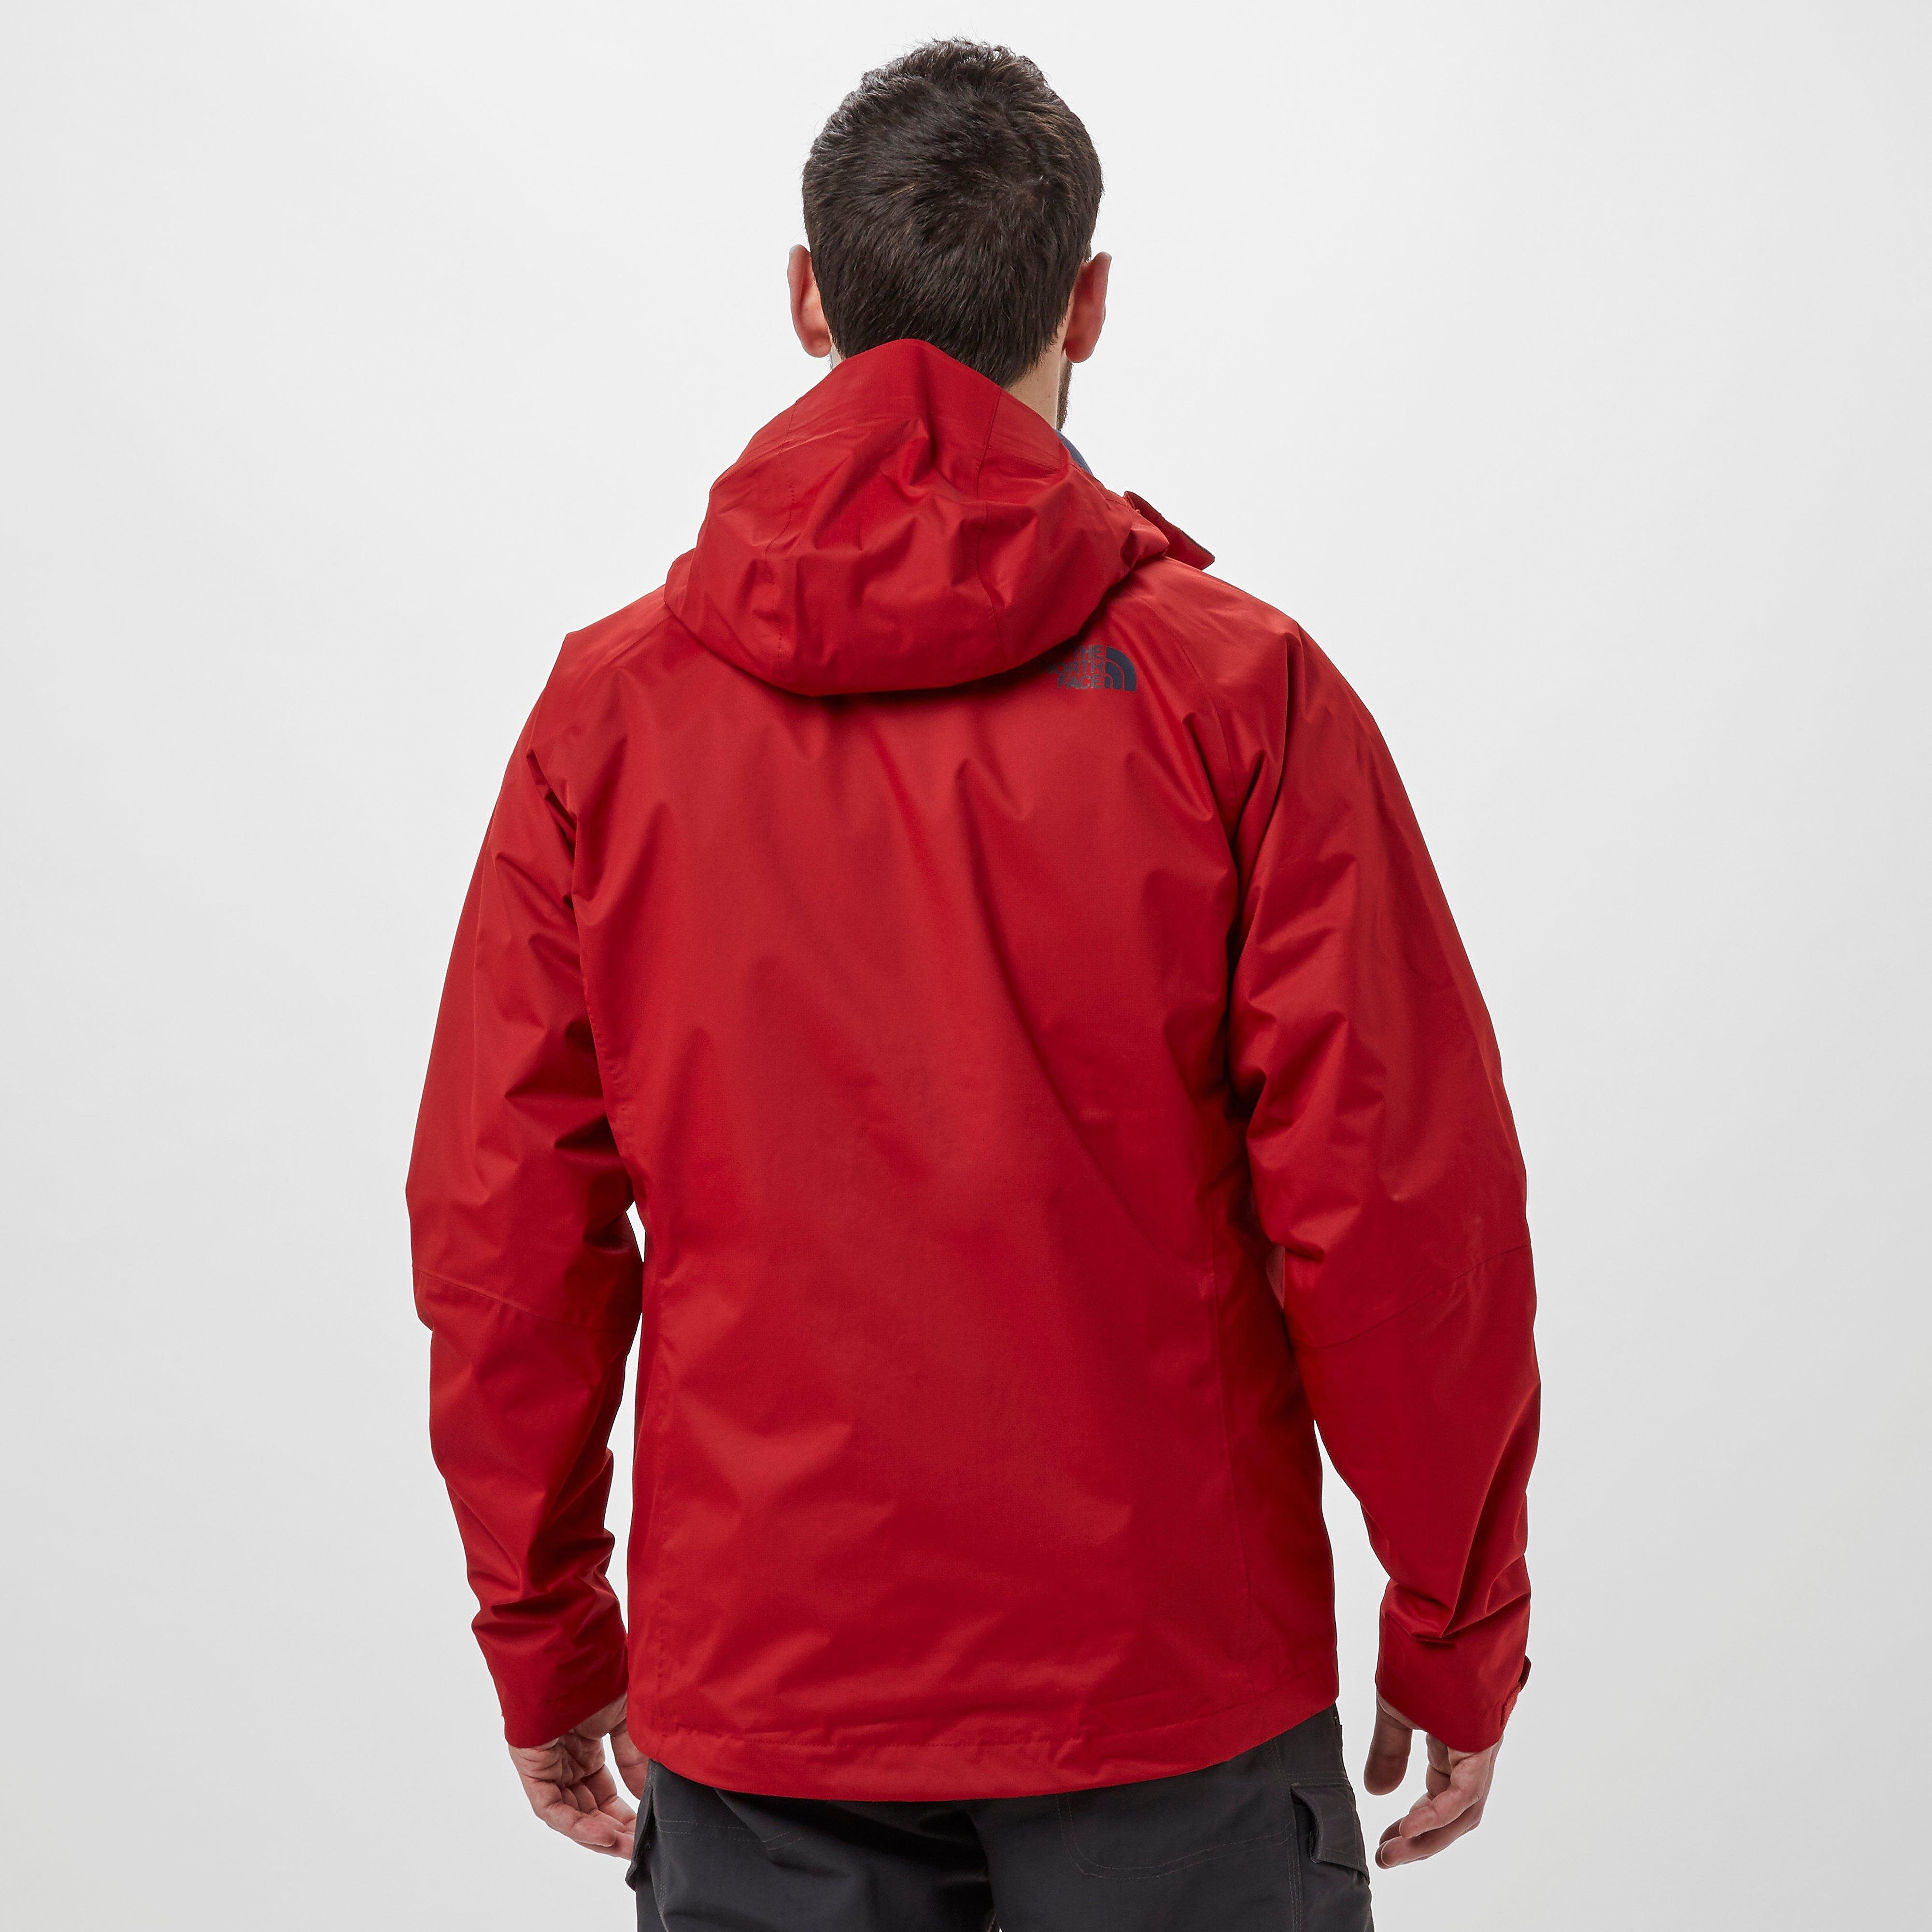 THE NORTH FACE Sequence Men's Jacket